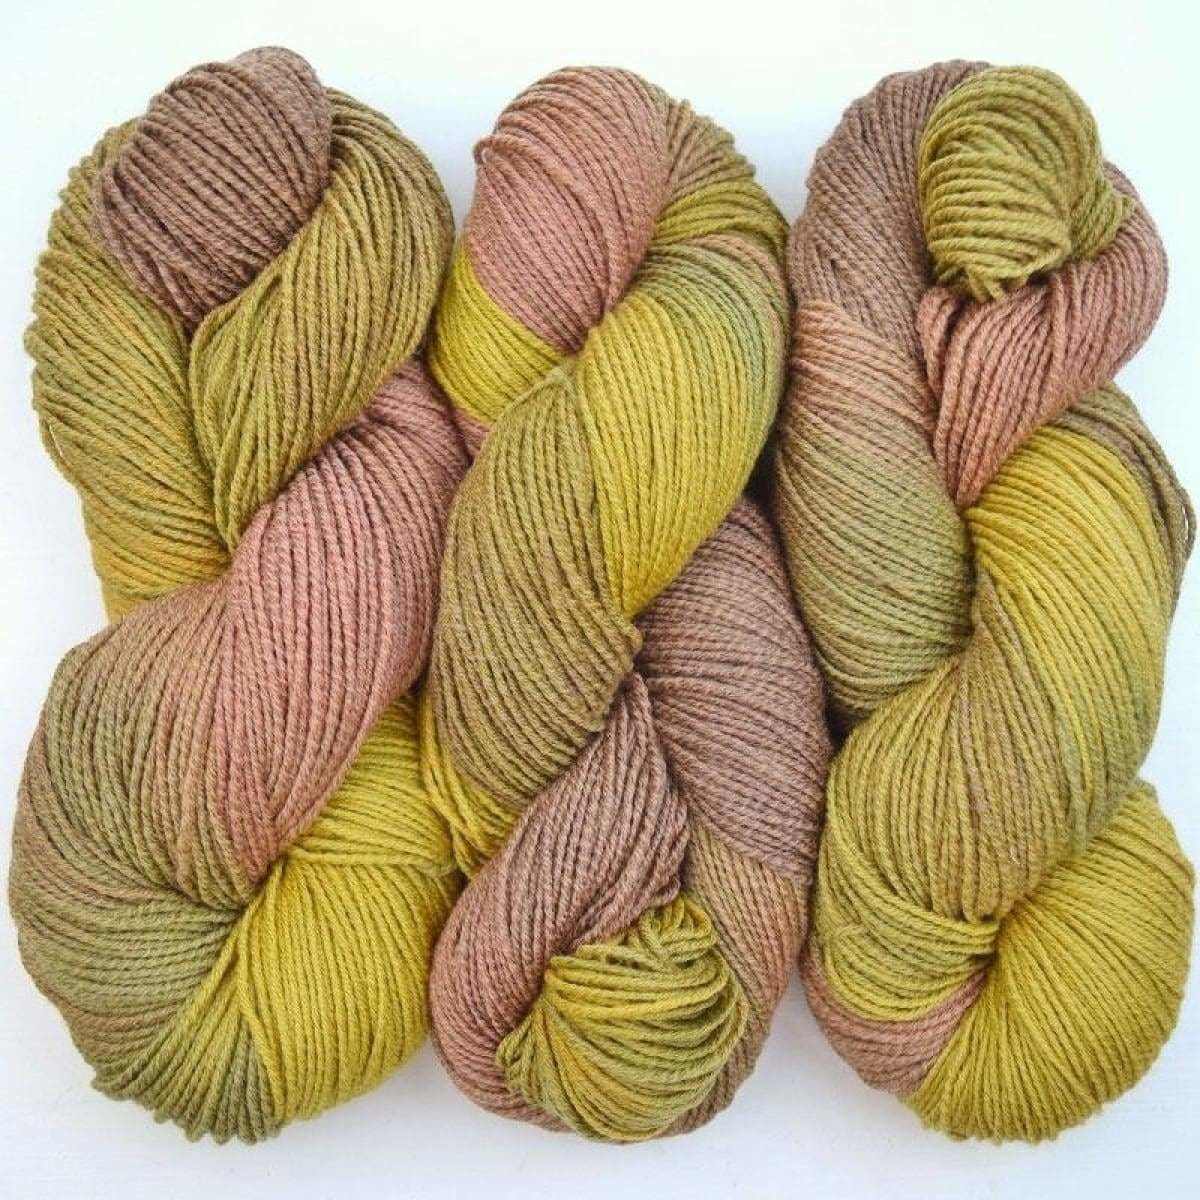 Shimmer - DK Weight Yarn - Cosi Fan Tutte Pastel - YARN